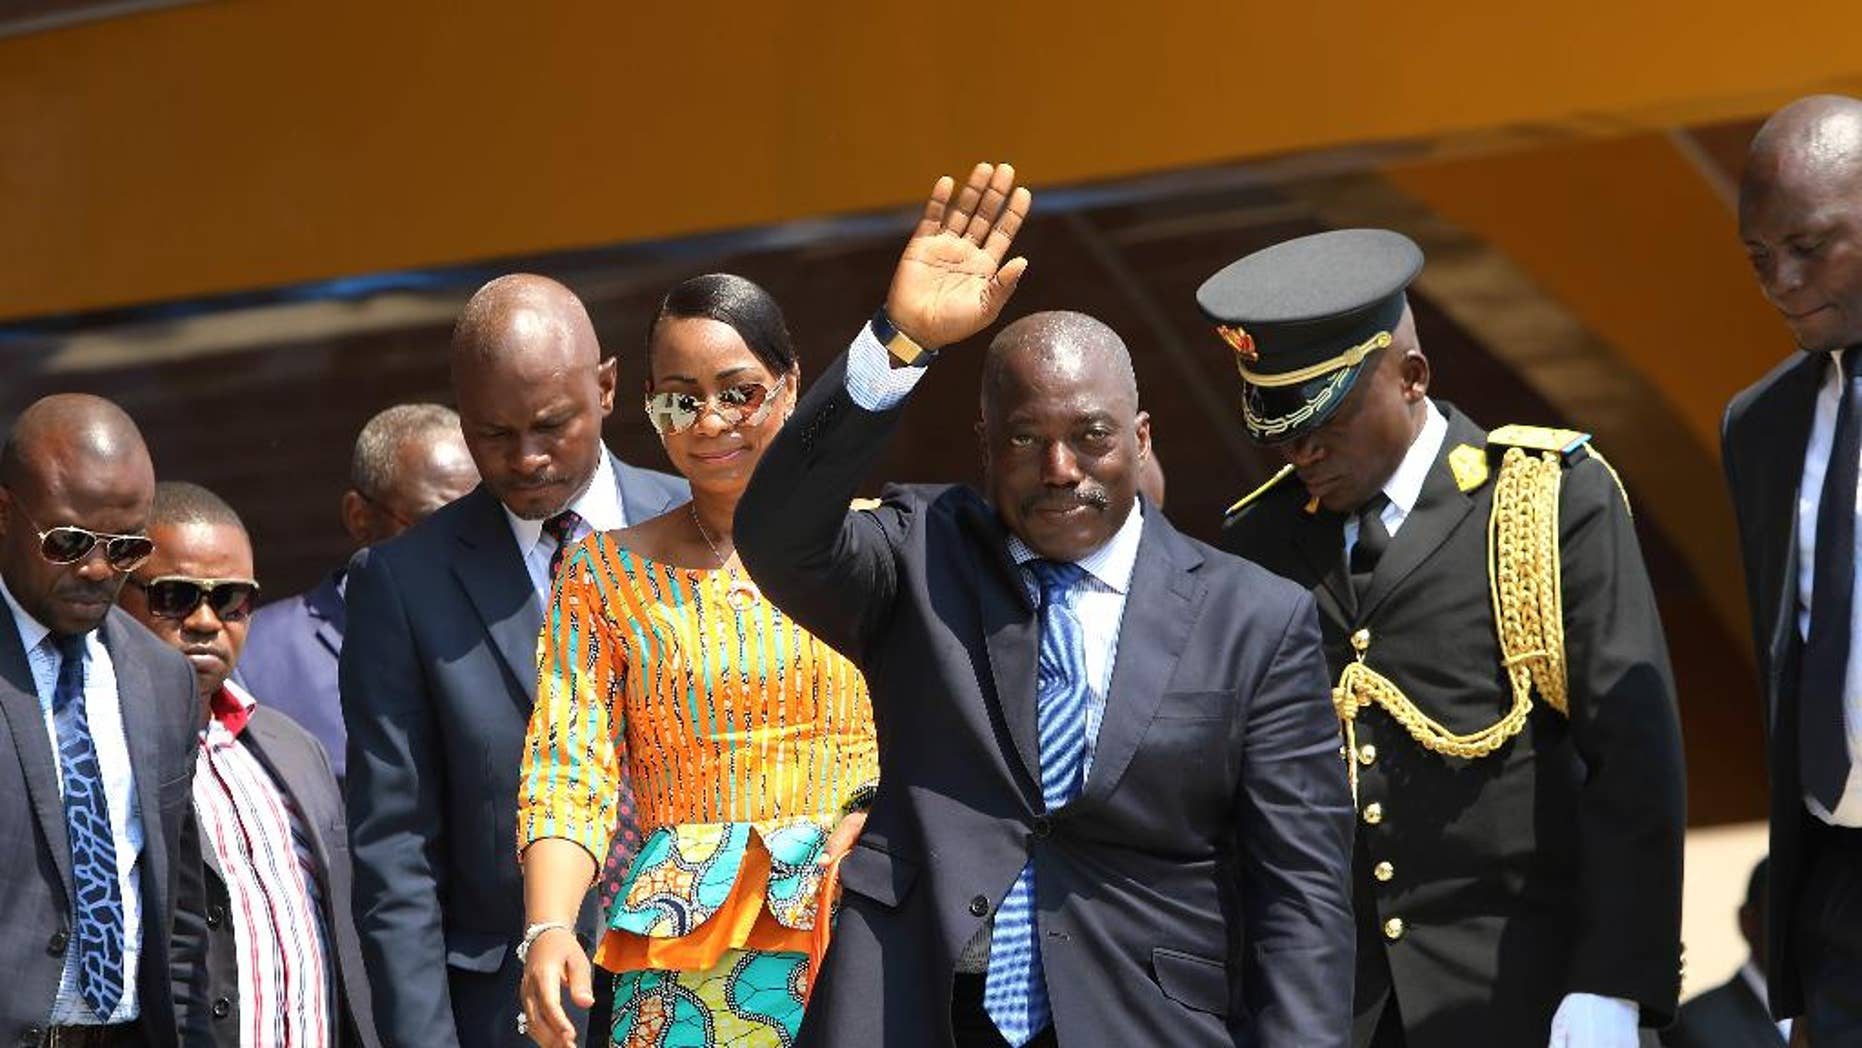 FILE- In this Thursday, June 30, 2016 file photo, Congolese President Joseph Kabila, center, waves as he and others celebrate the Democratic Republic of Congo, DRC, independence in Kindu, Congo. Congo's ruling party is proposing an interim unity government with the opposition as an election set for November, 2016, now seems nearly impossible, though President Joseph Kabila would remain in charge, the country's justice minister said. (AP Photo/John Bompengo, File)